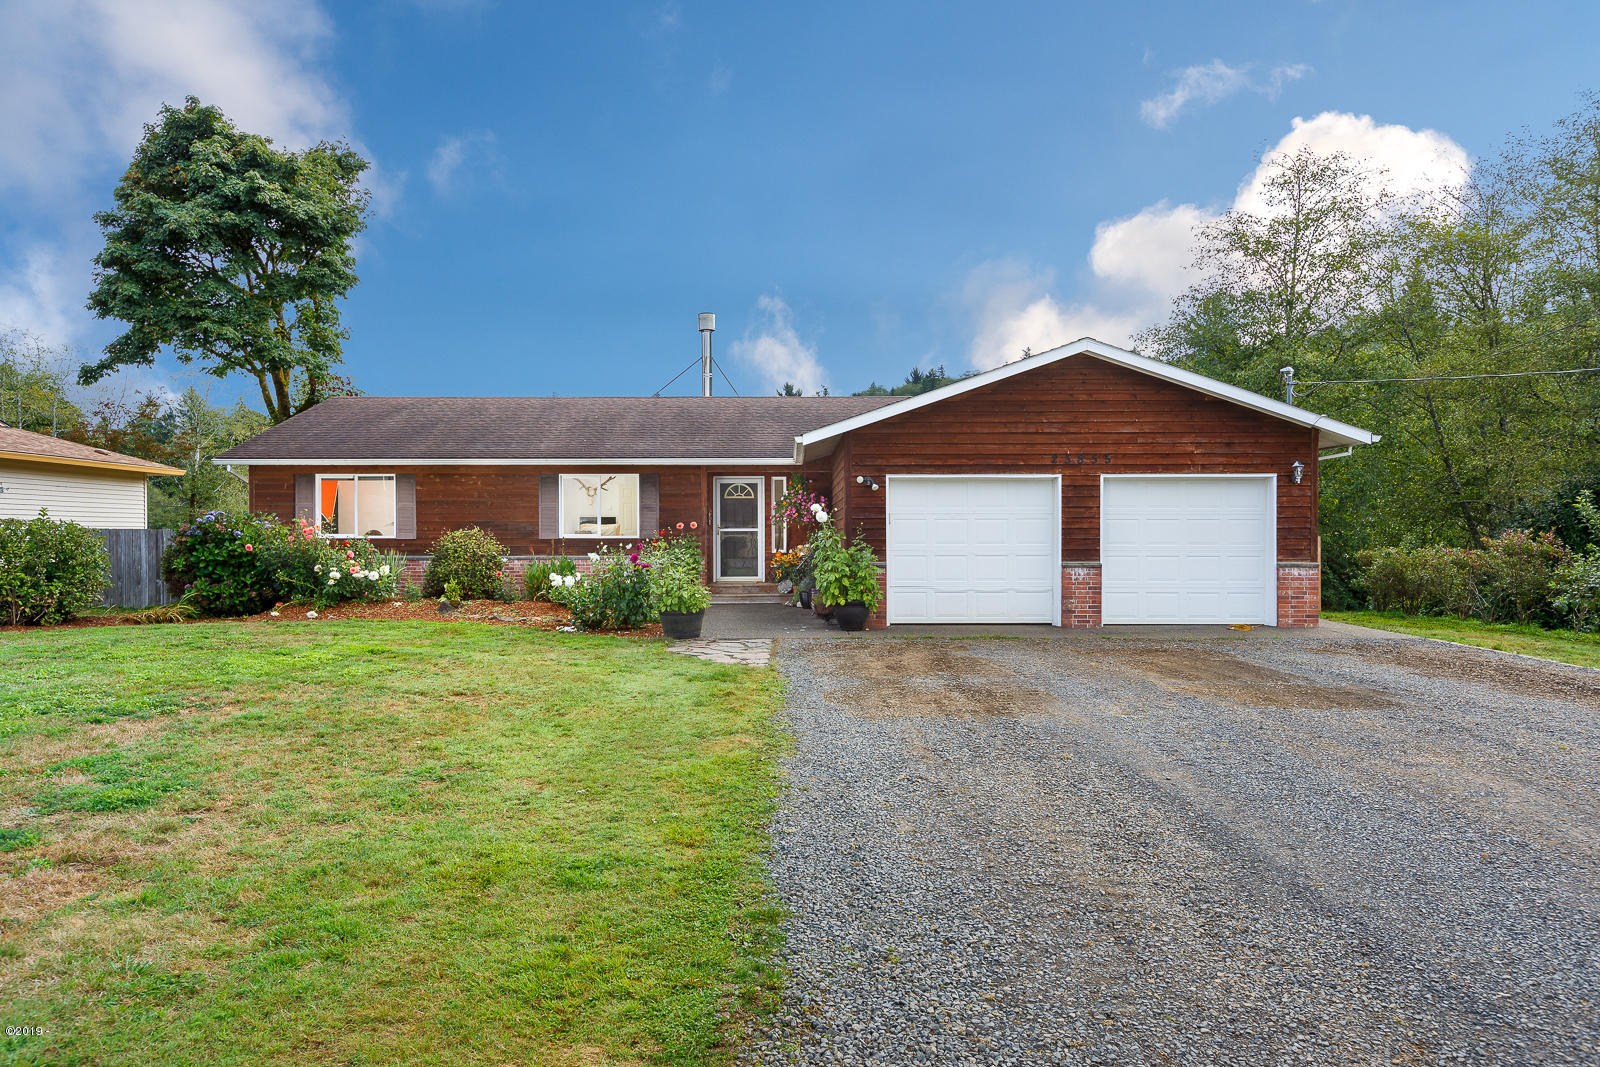 25855 Chinook St., Cloverdale, OR 97112